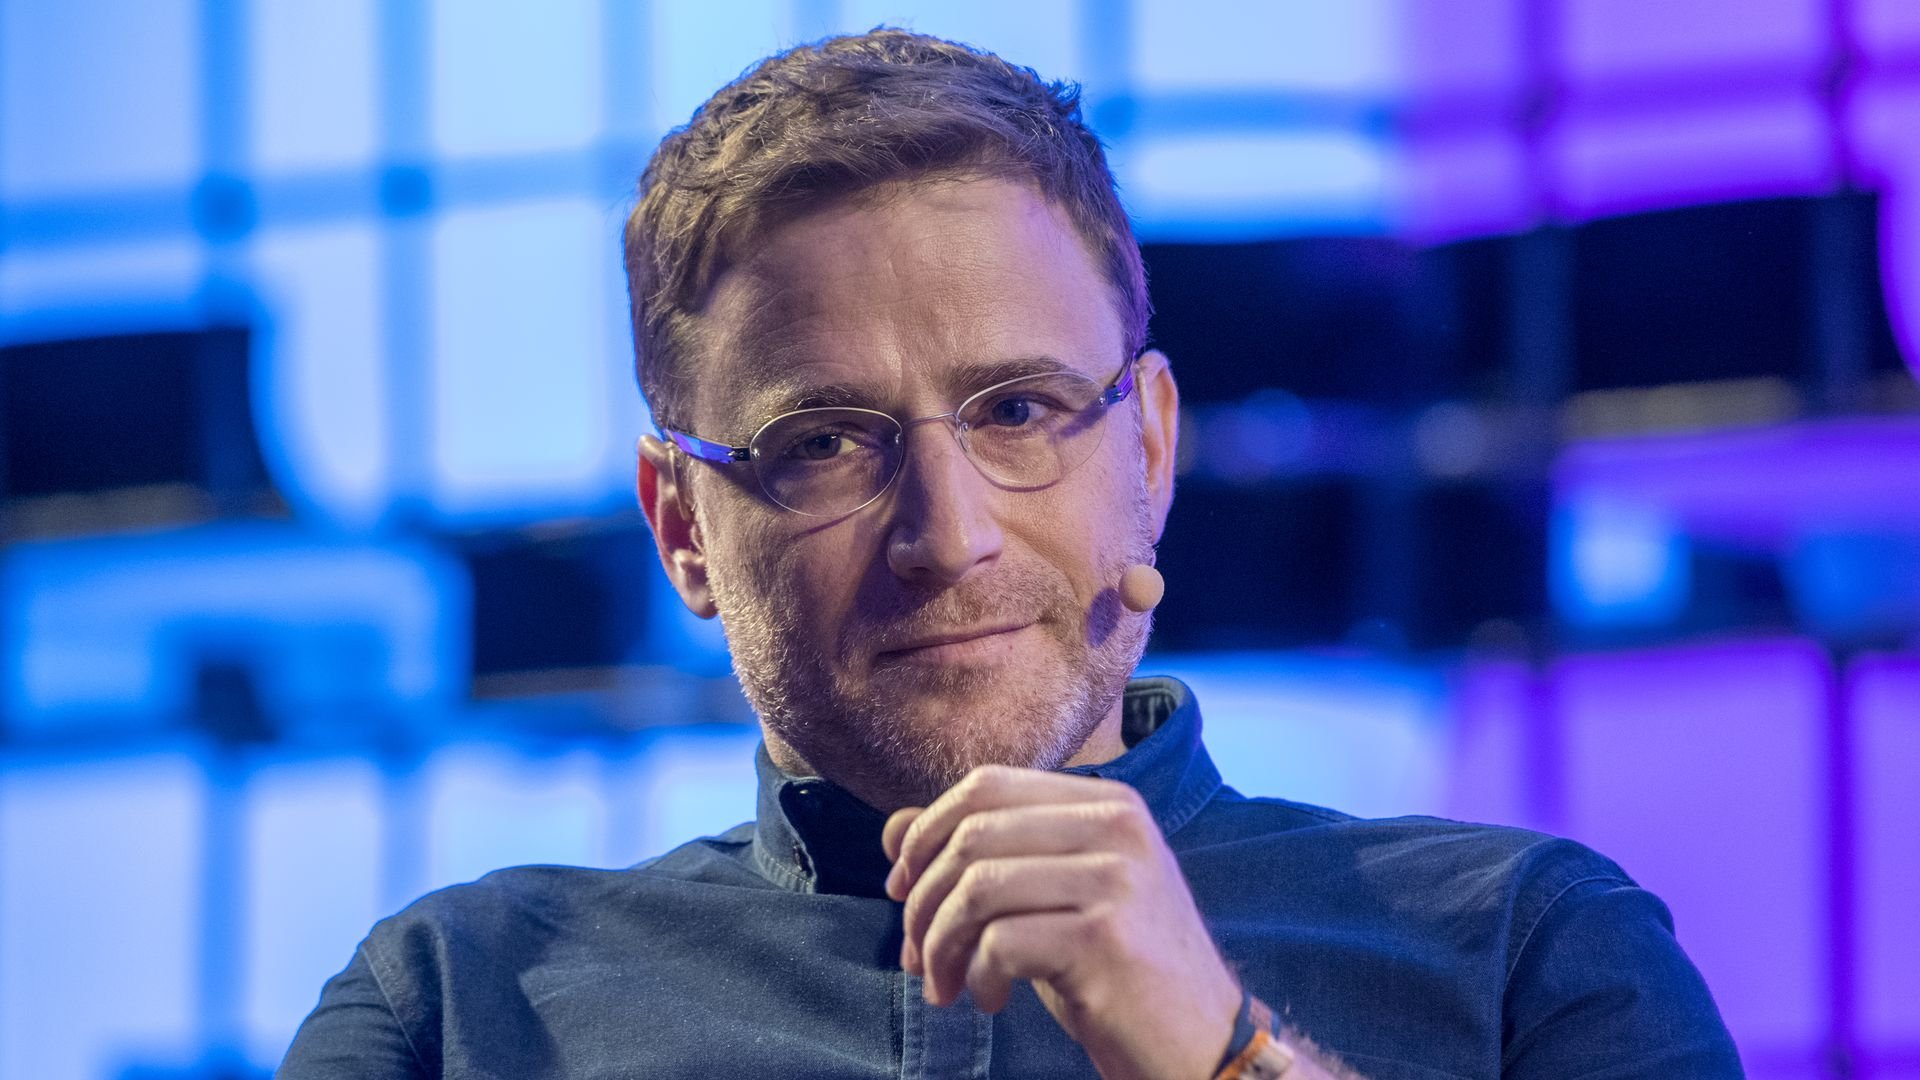 Stewart Butterfield, Co-Founder and CEO, Slack